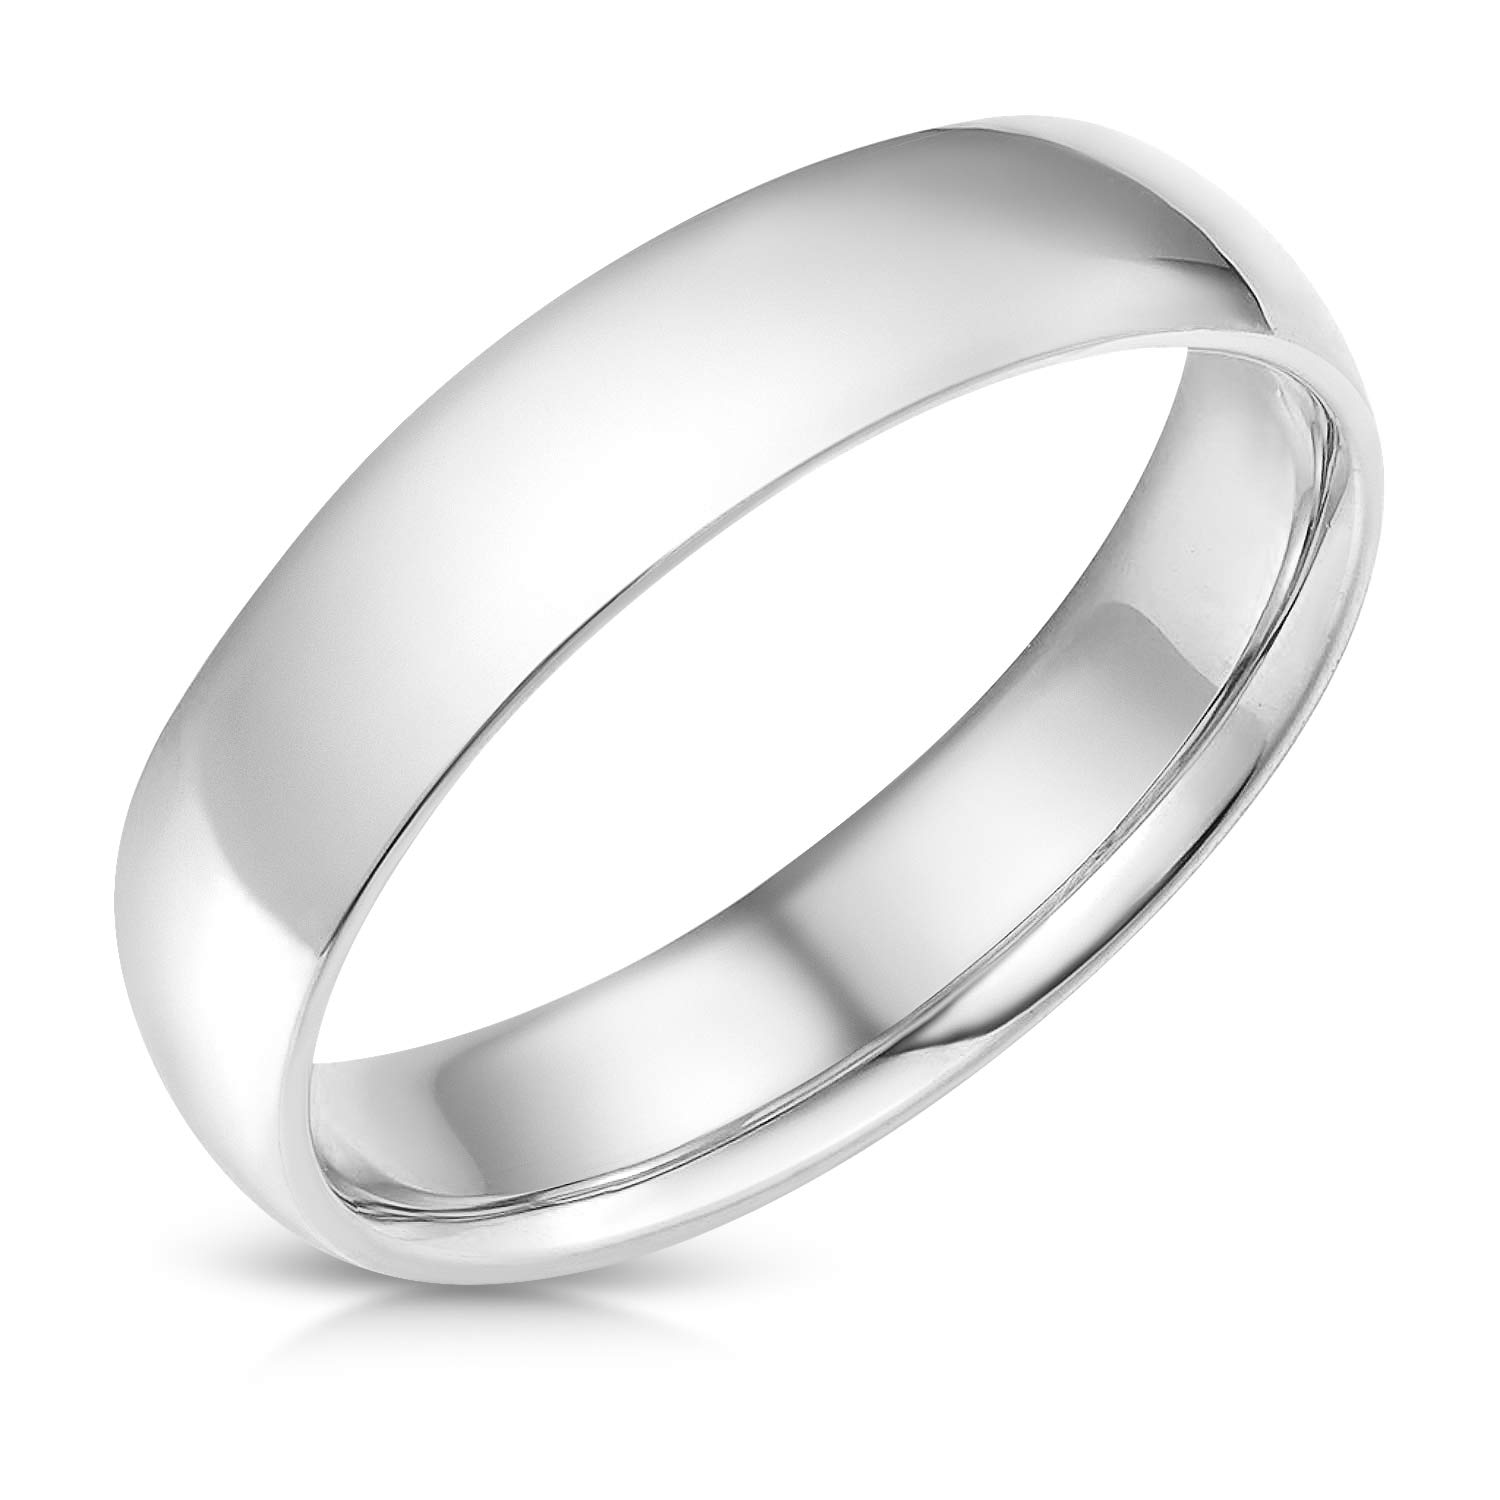 Ioka - 14k Solid White Gold 5mm Plain Comfort Fit Wedding Band - size 8 by Ioka (Image #2)